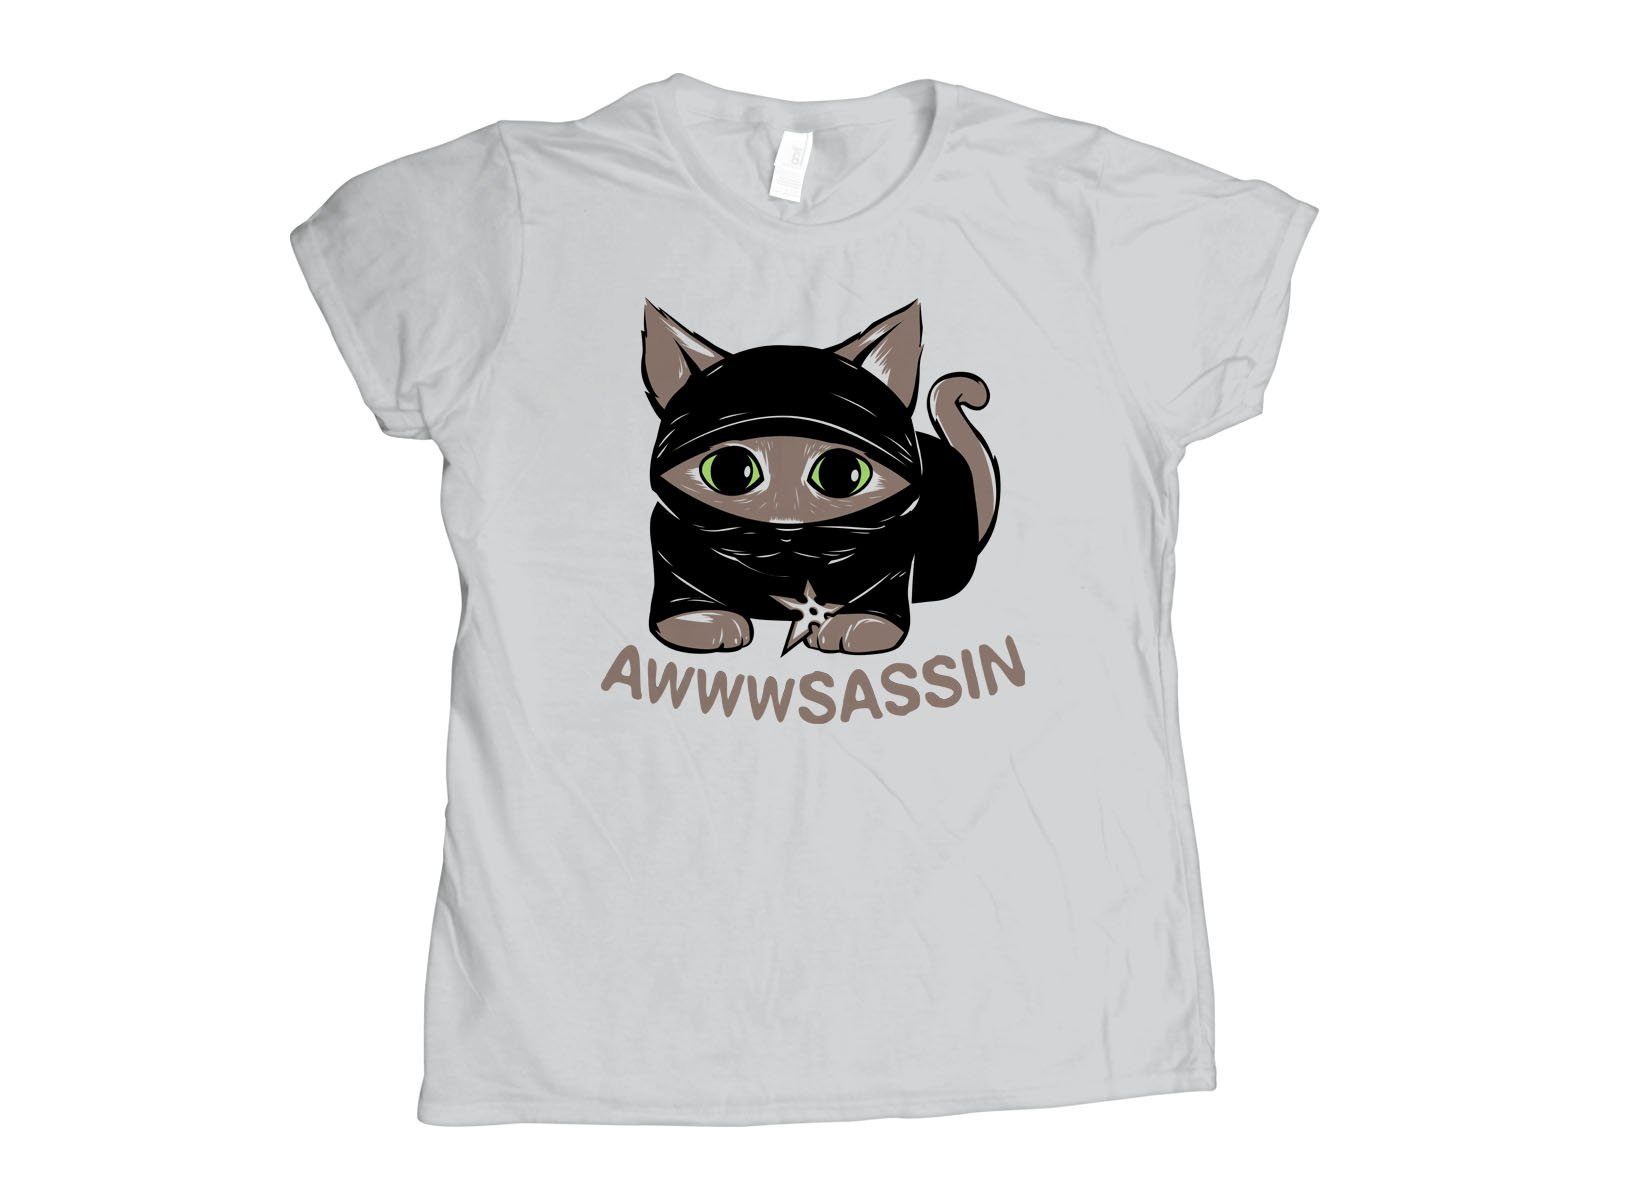 Awwwsassin on Womens T-Shirt